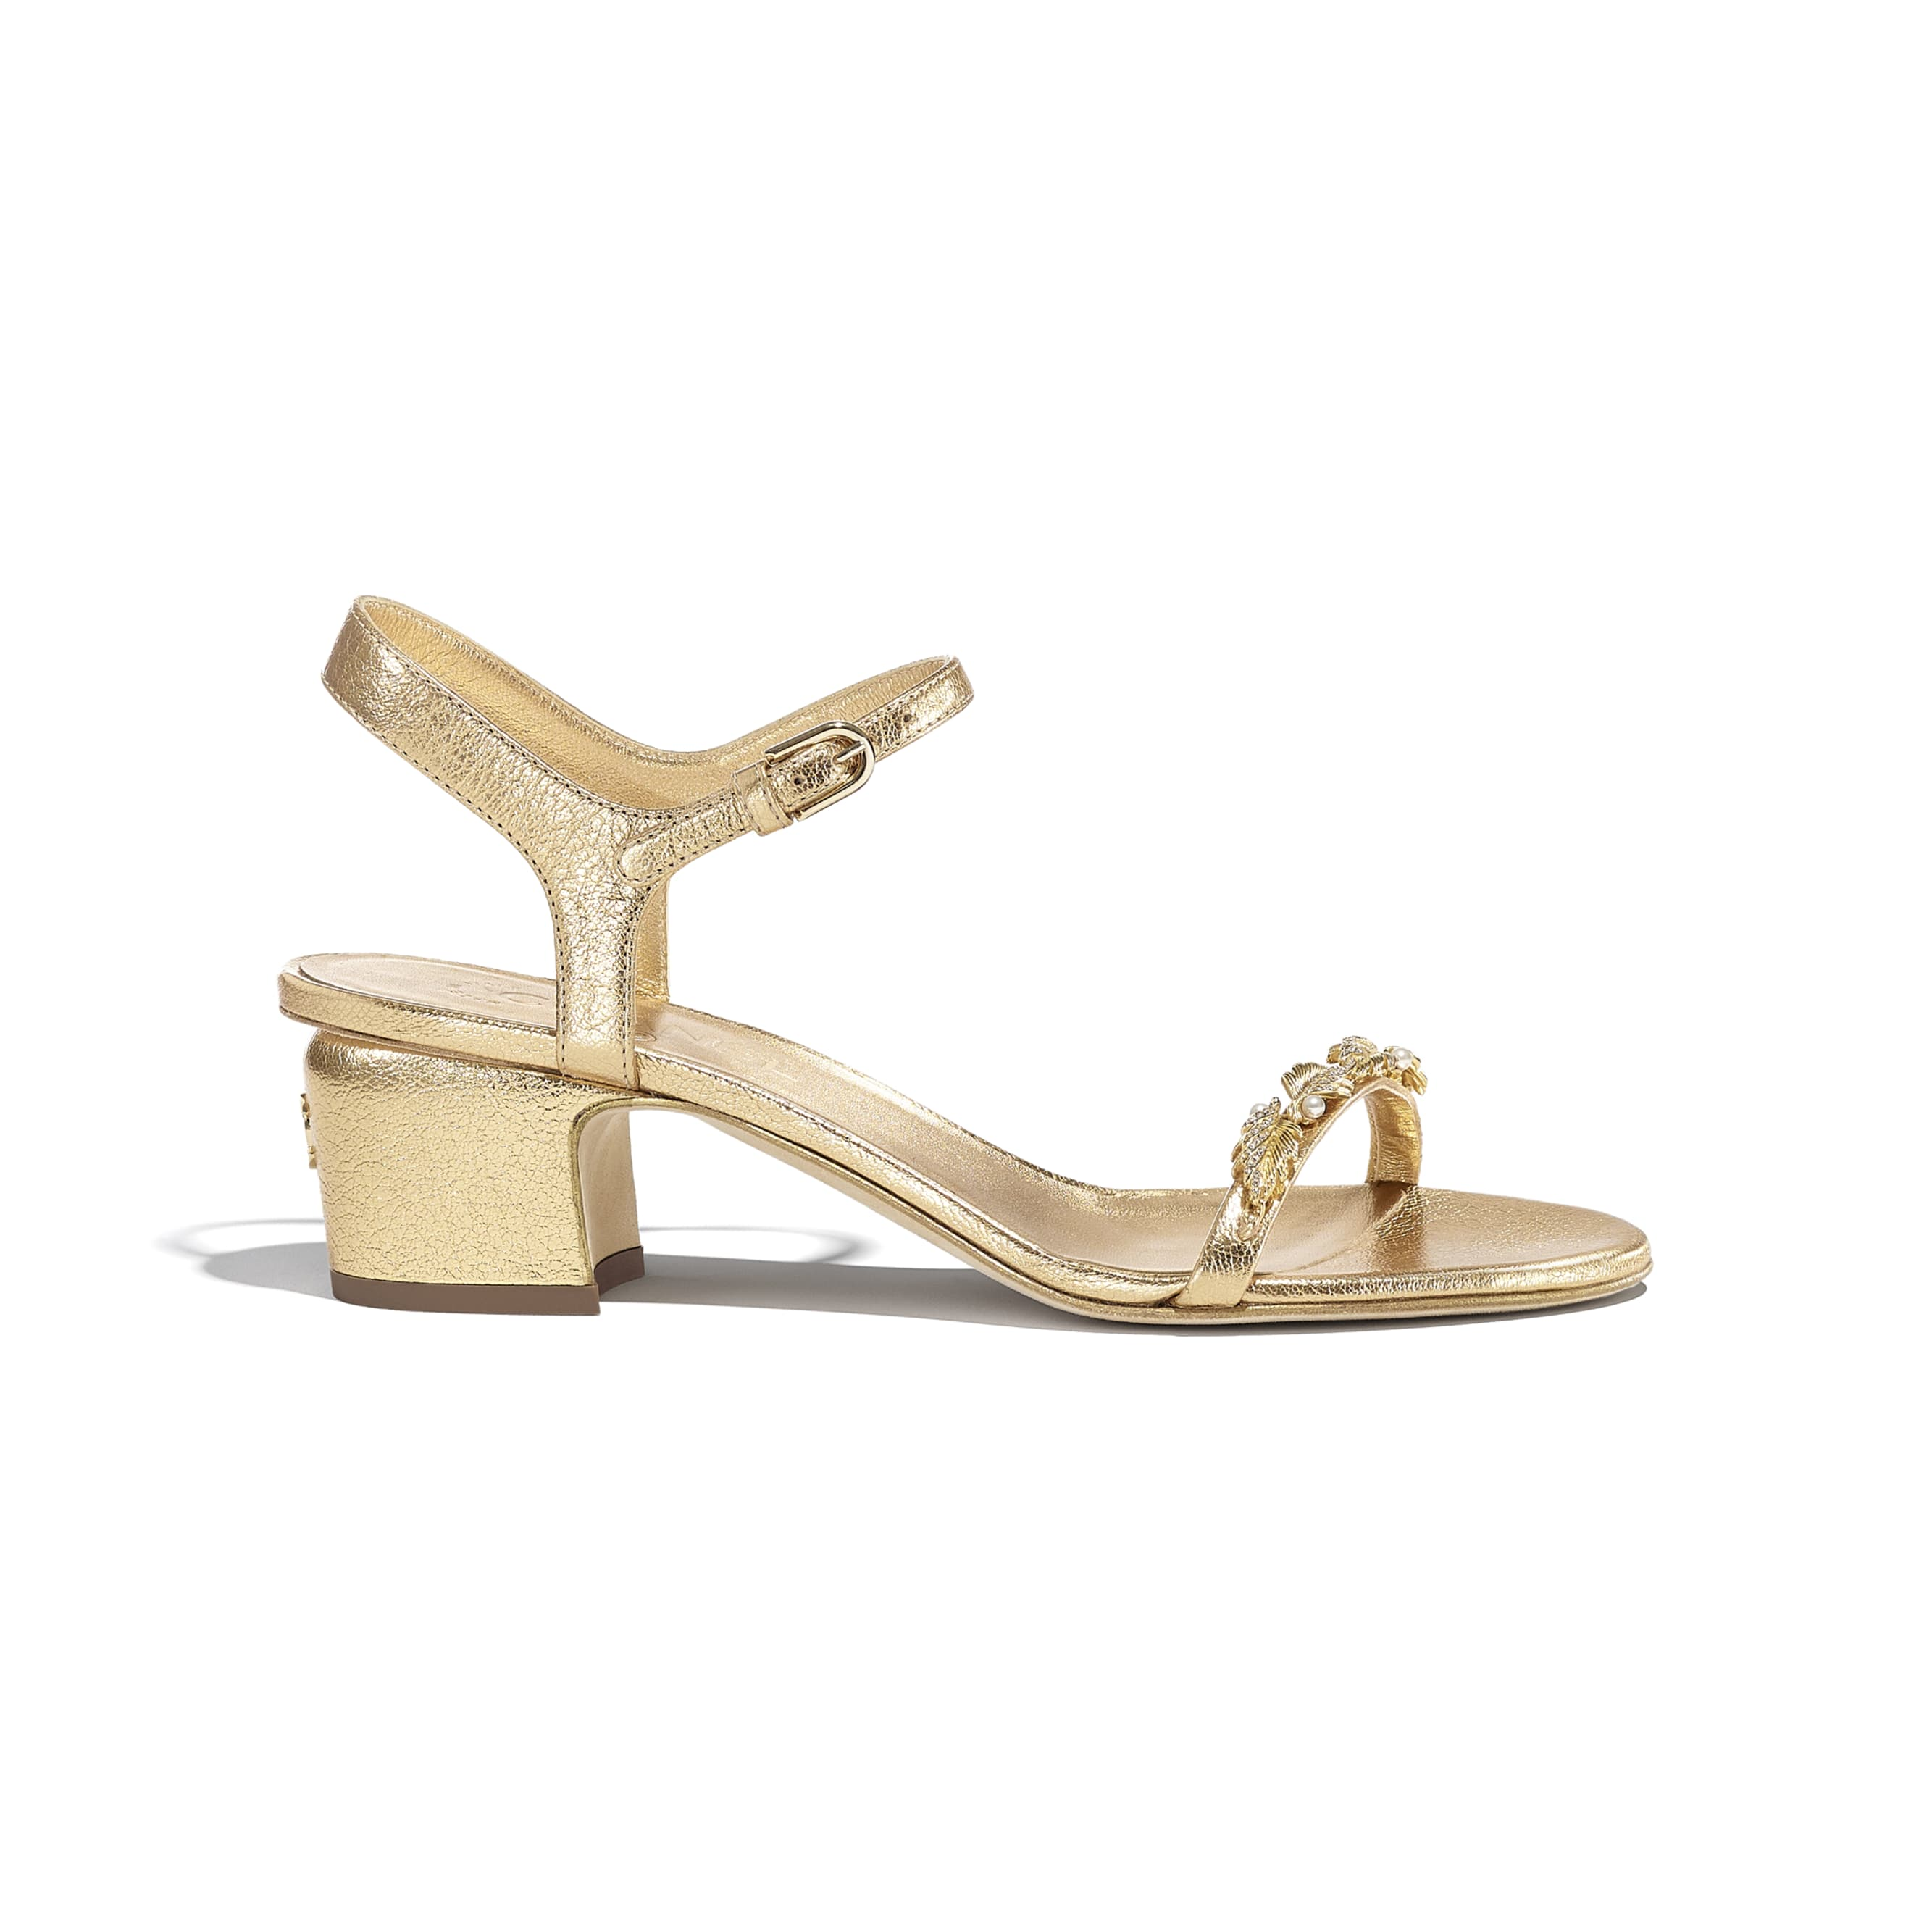 Sandals - Gold - Laminated Goatskin & Jewelry  - CHANEL - Default view - see standard sized version